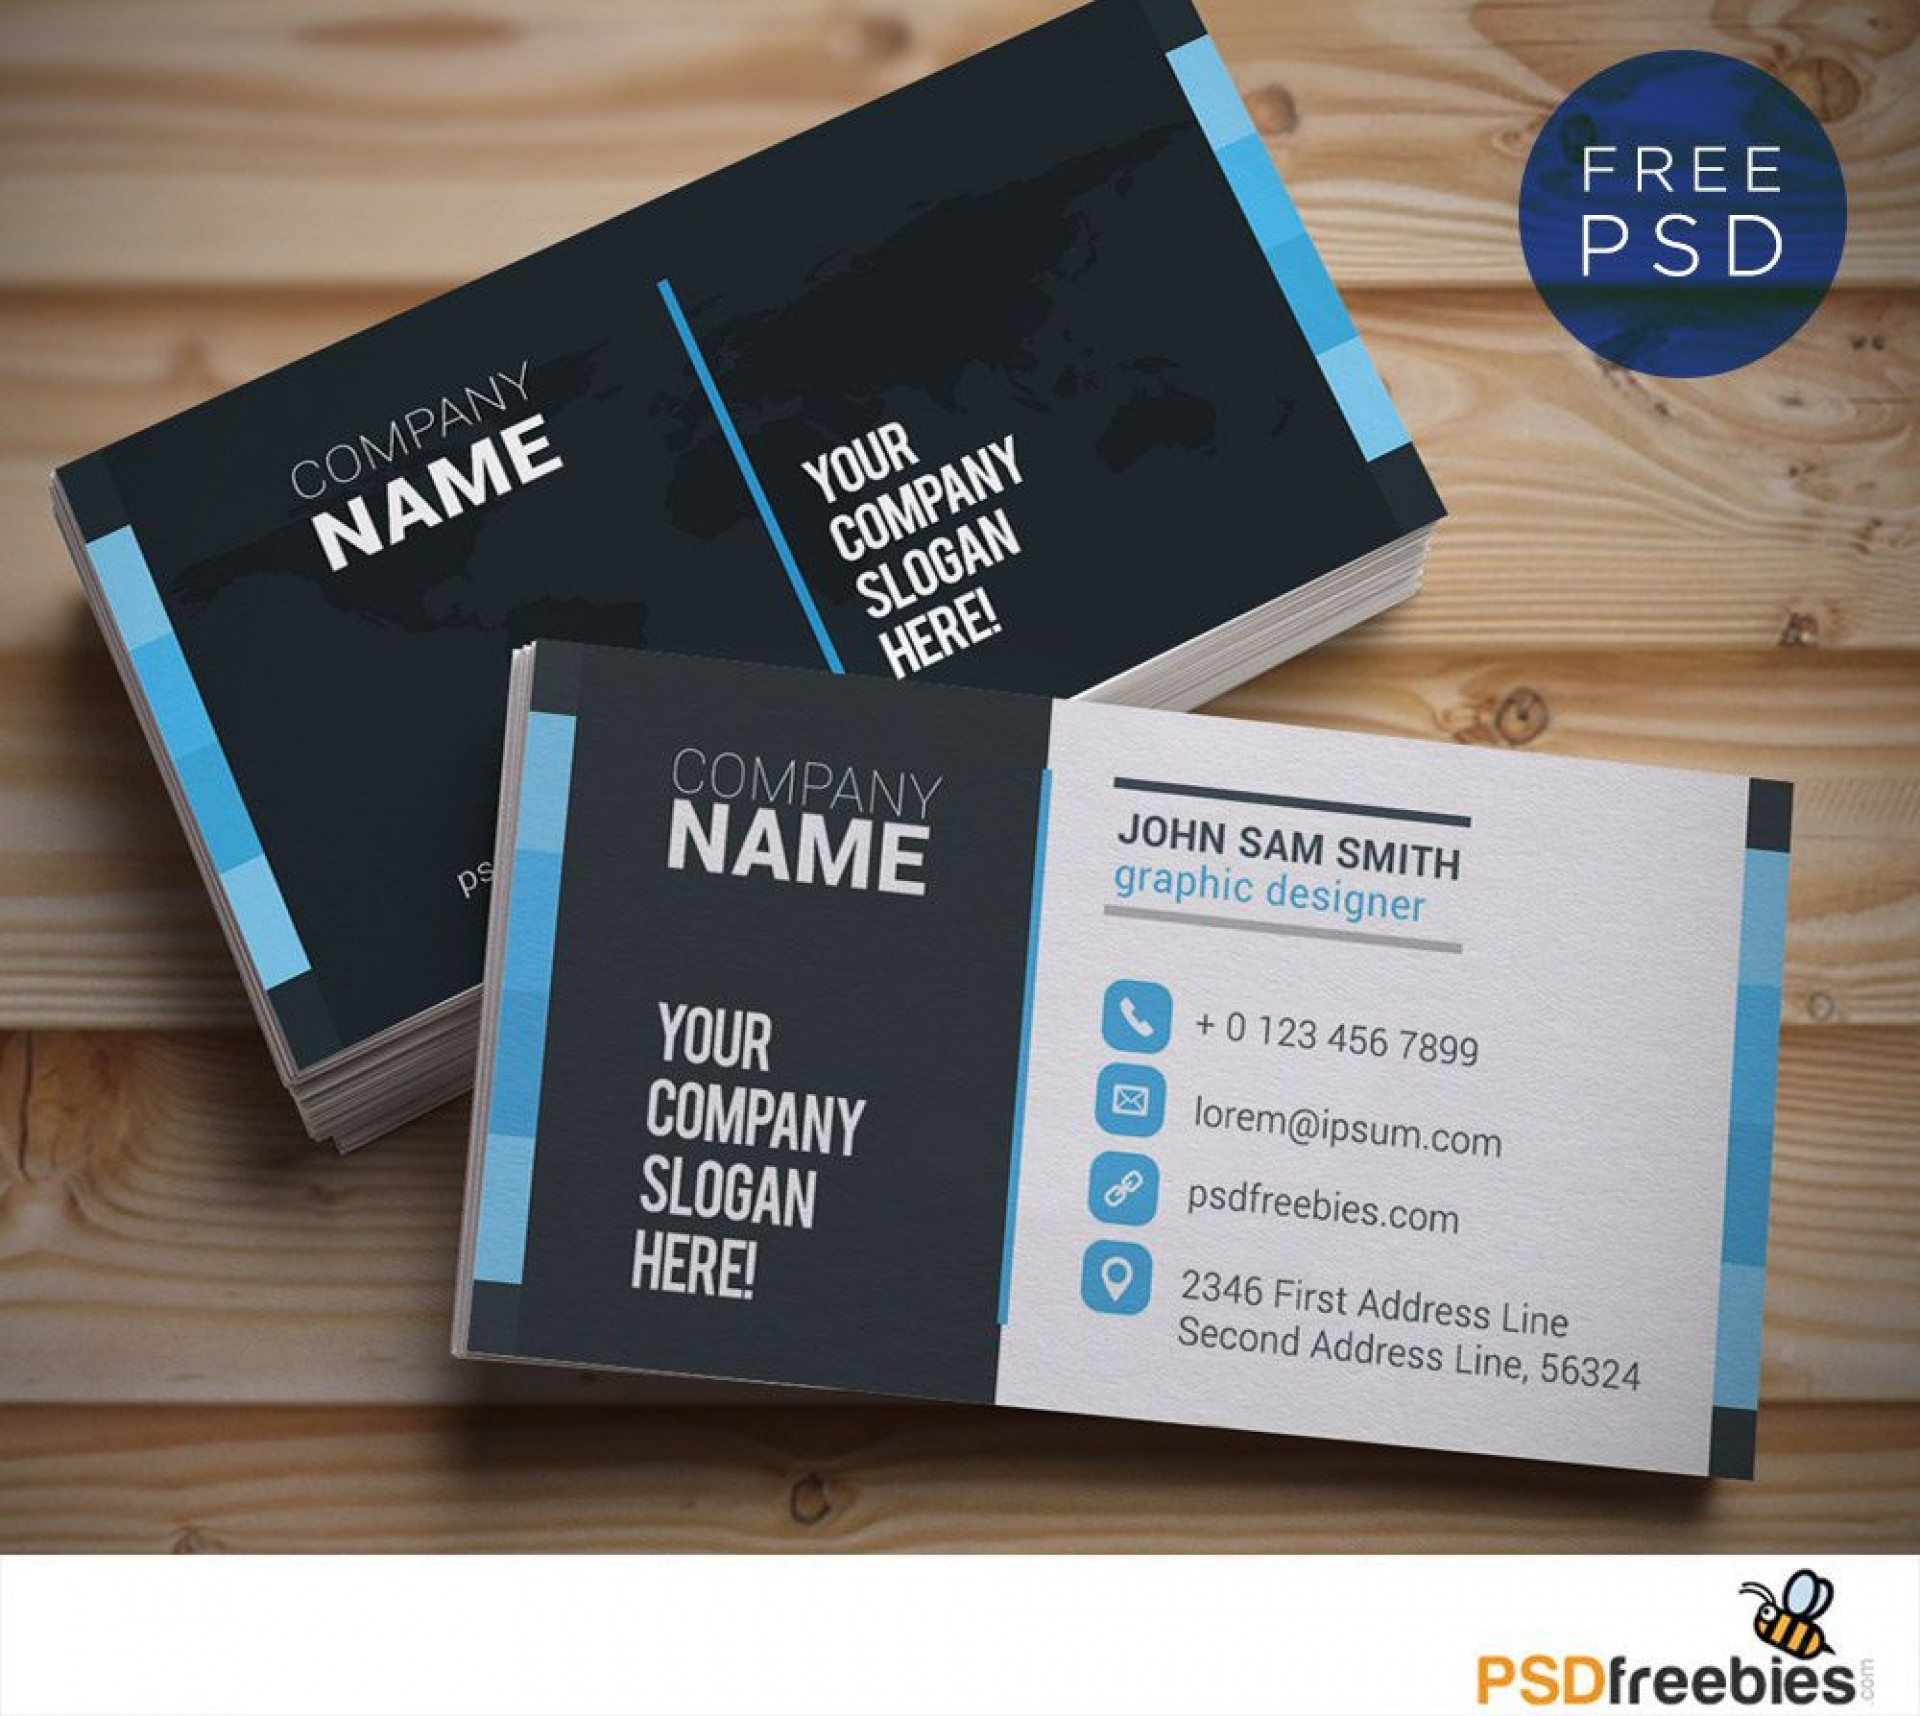 007 Unbelievable Busines Card Template Free Download Example  Psd File Pdf Ppt1920